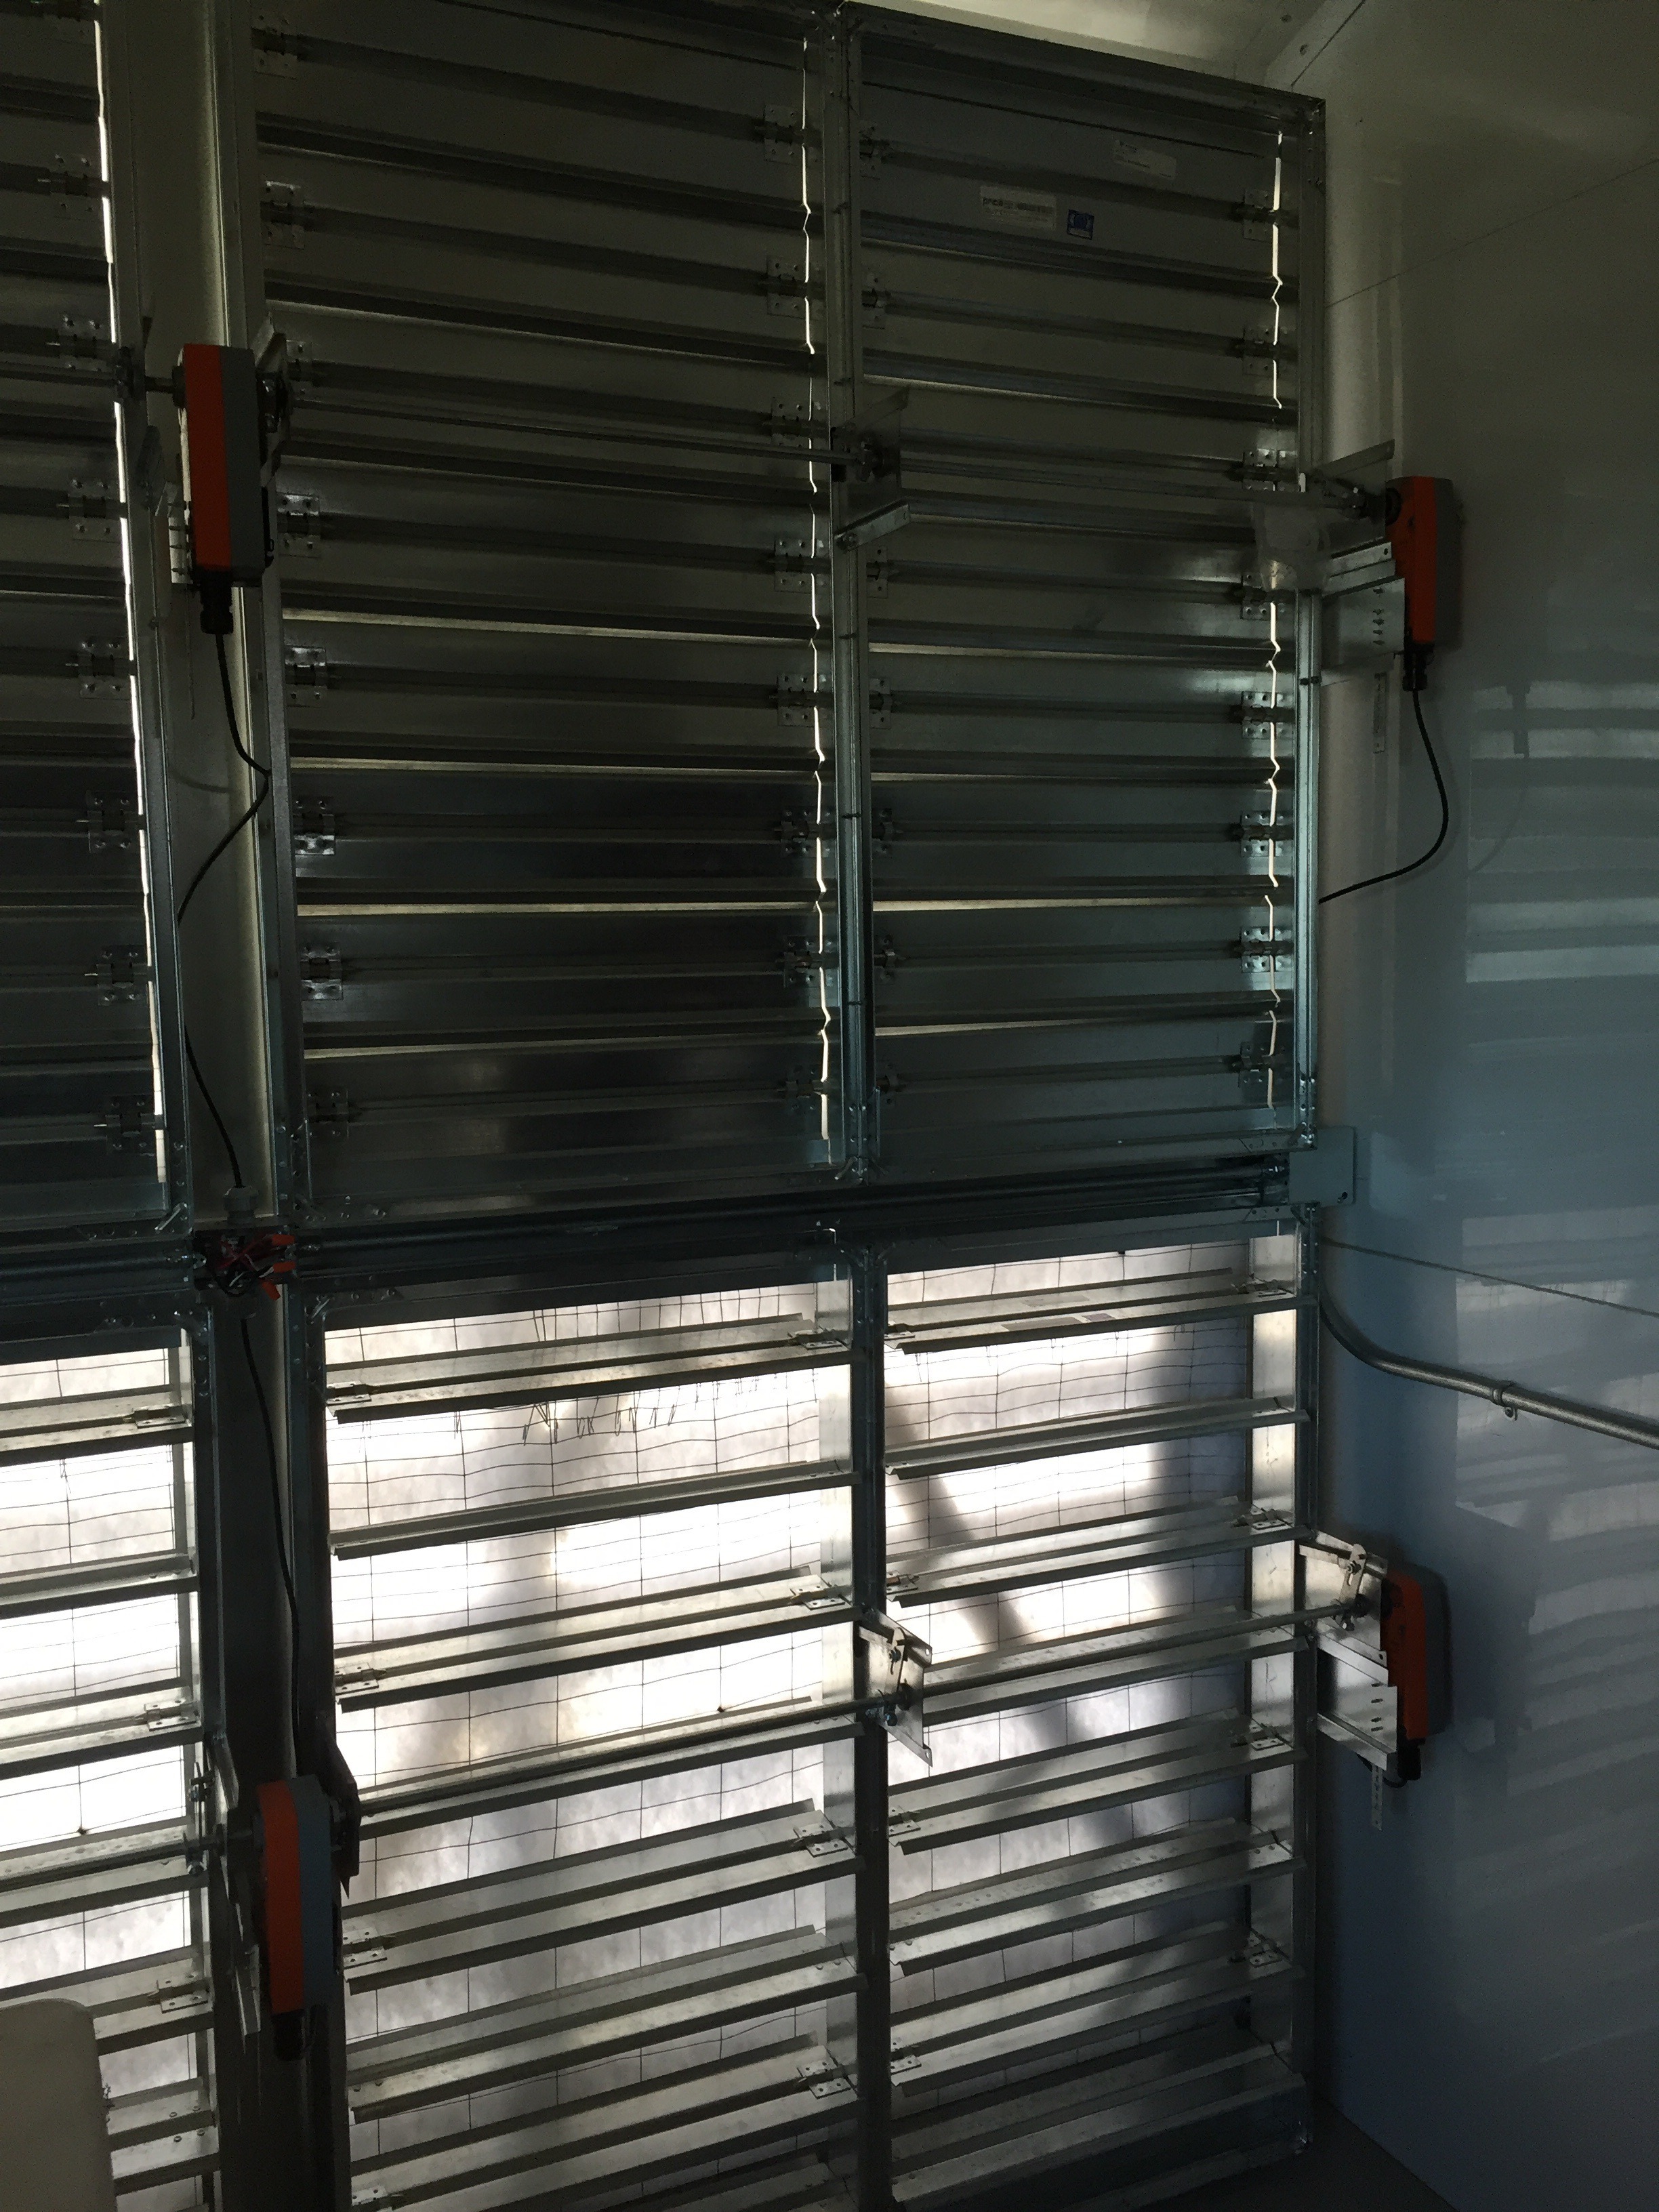 Moving inside the structure, the entire intake wall is made of 6 electrically controlled dampers. These dampers open based on the inside temperature so only the necessary amount of air passes through. This is great for the winter months when almost no outside cooling air is needed.